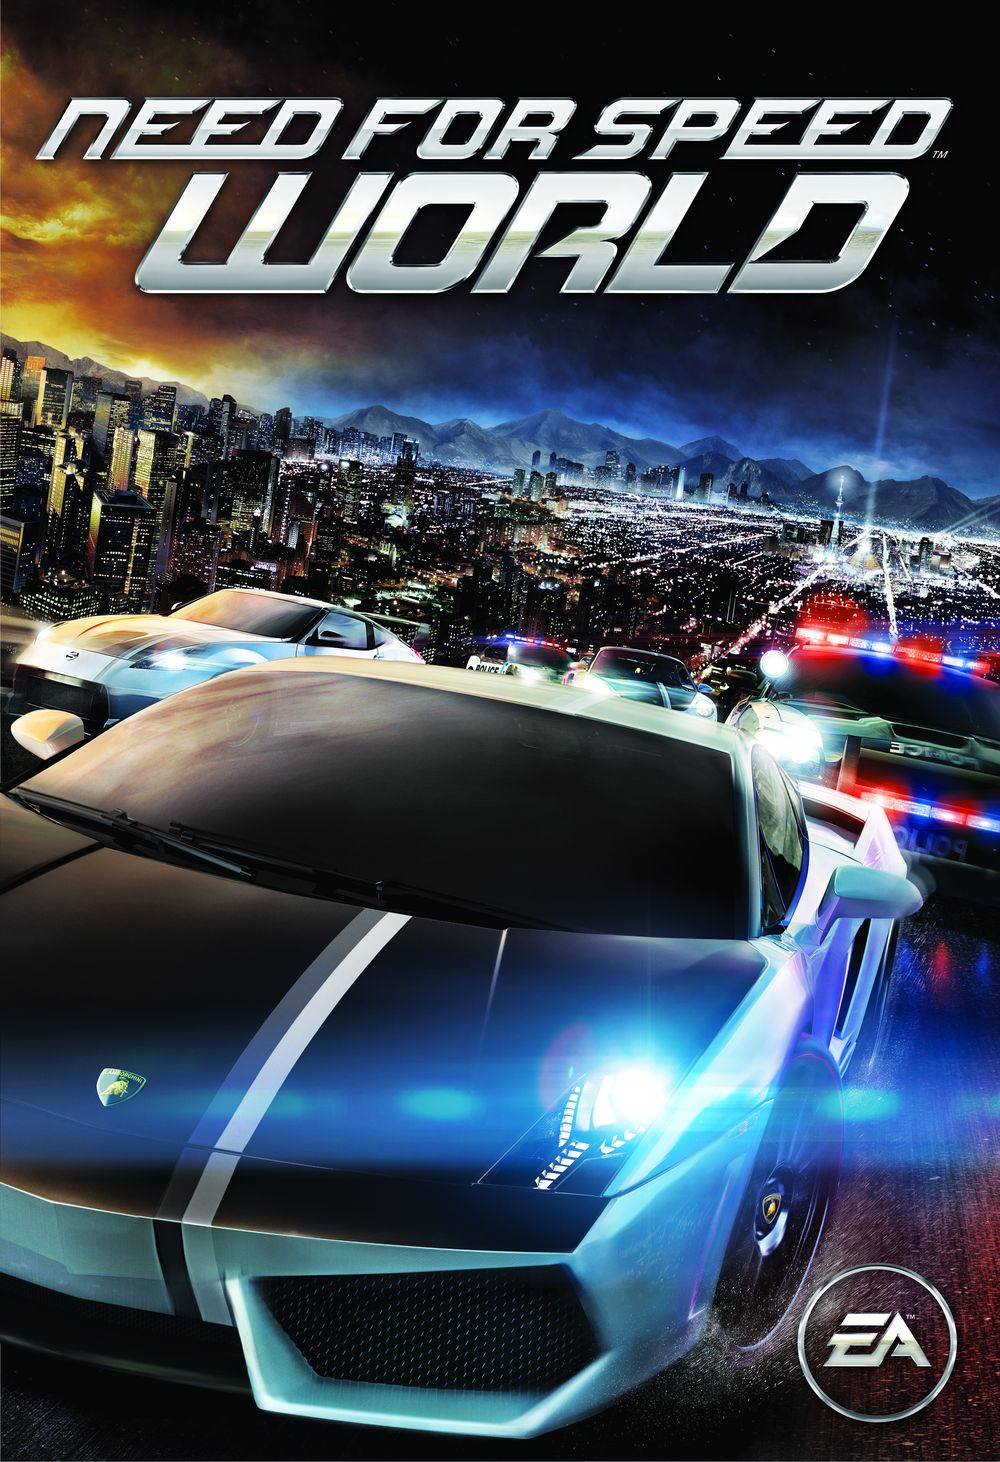 need for speed world walkthrough video guide pc. Black Bedroom Furniture Sets. Home Design Ideas